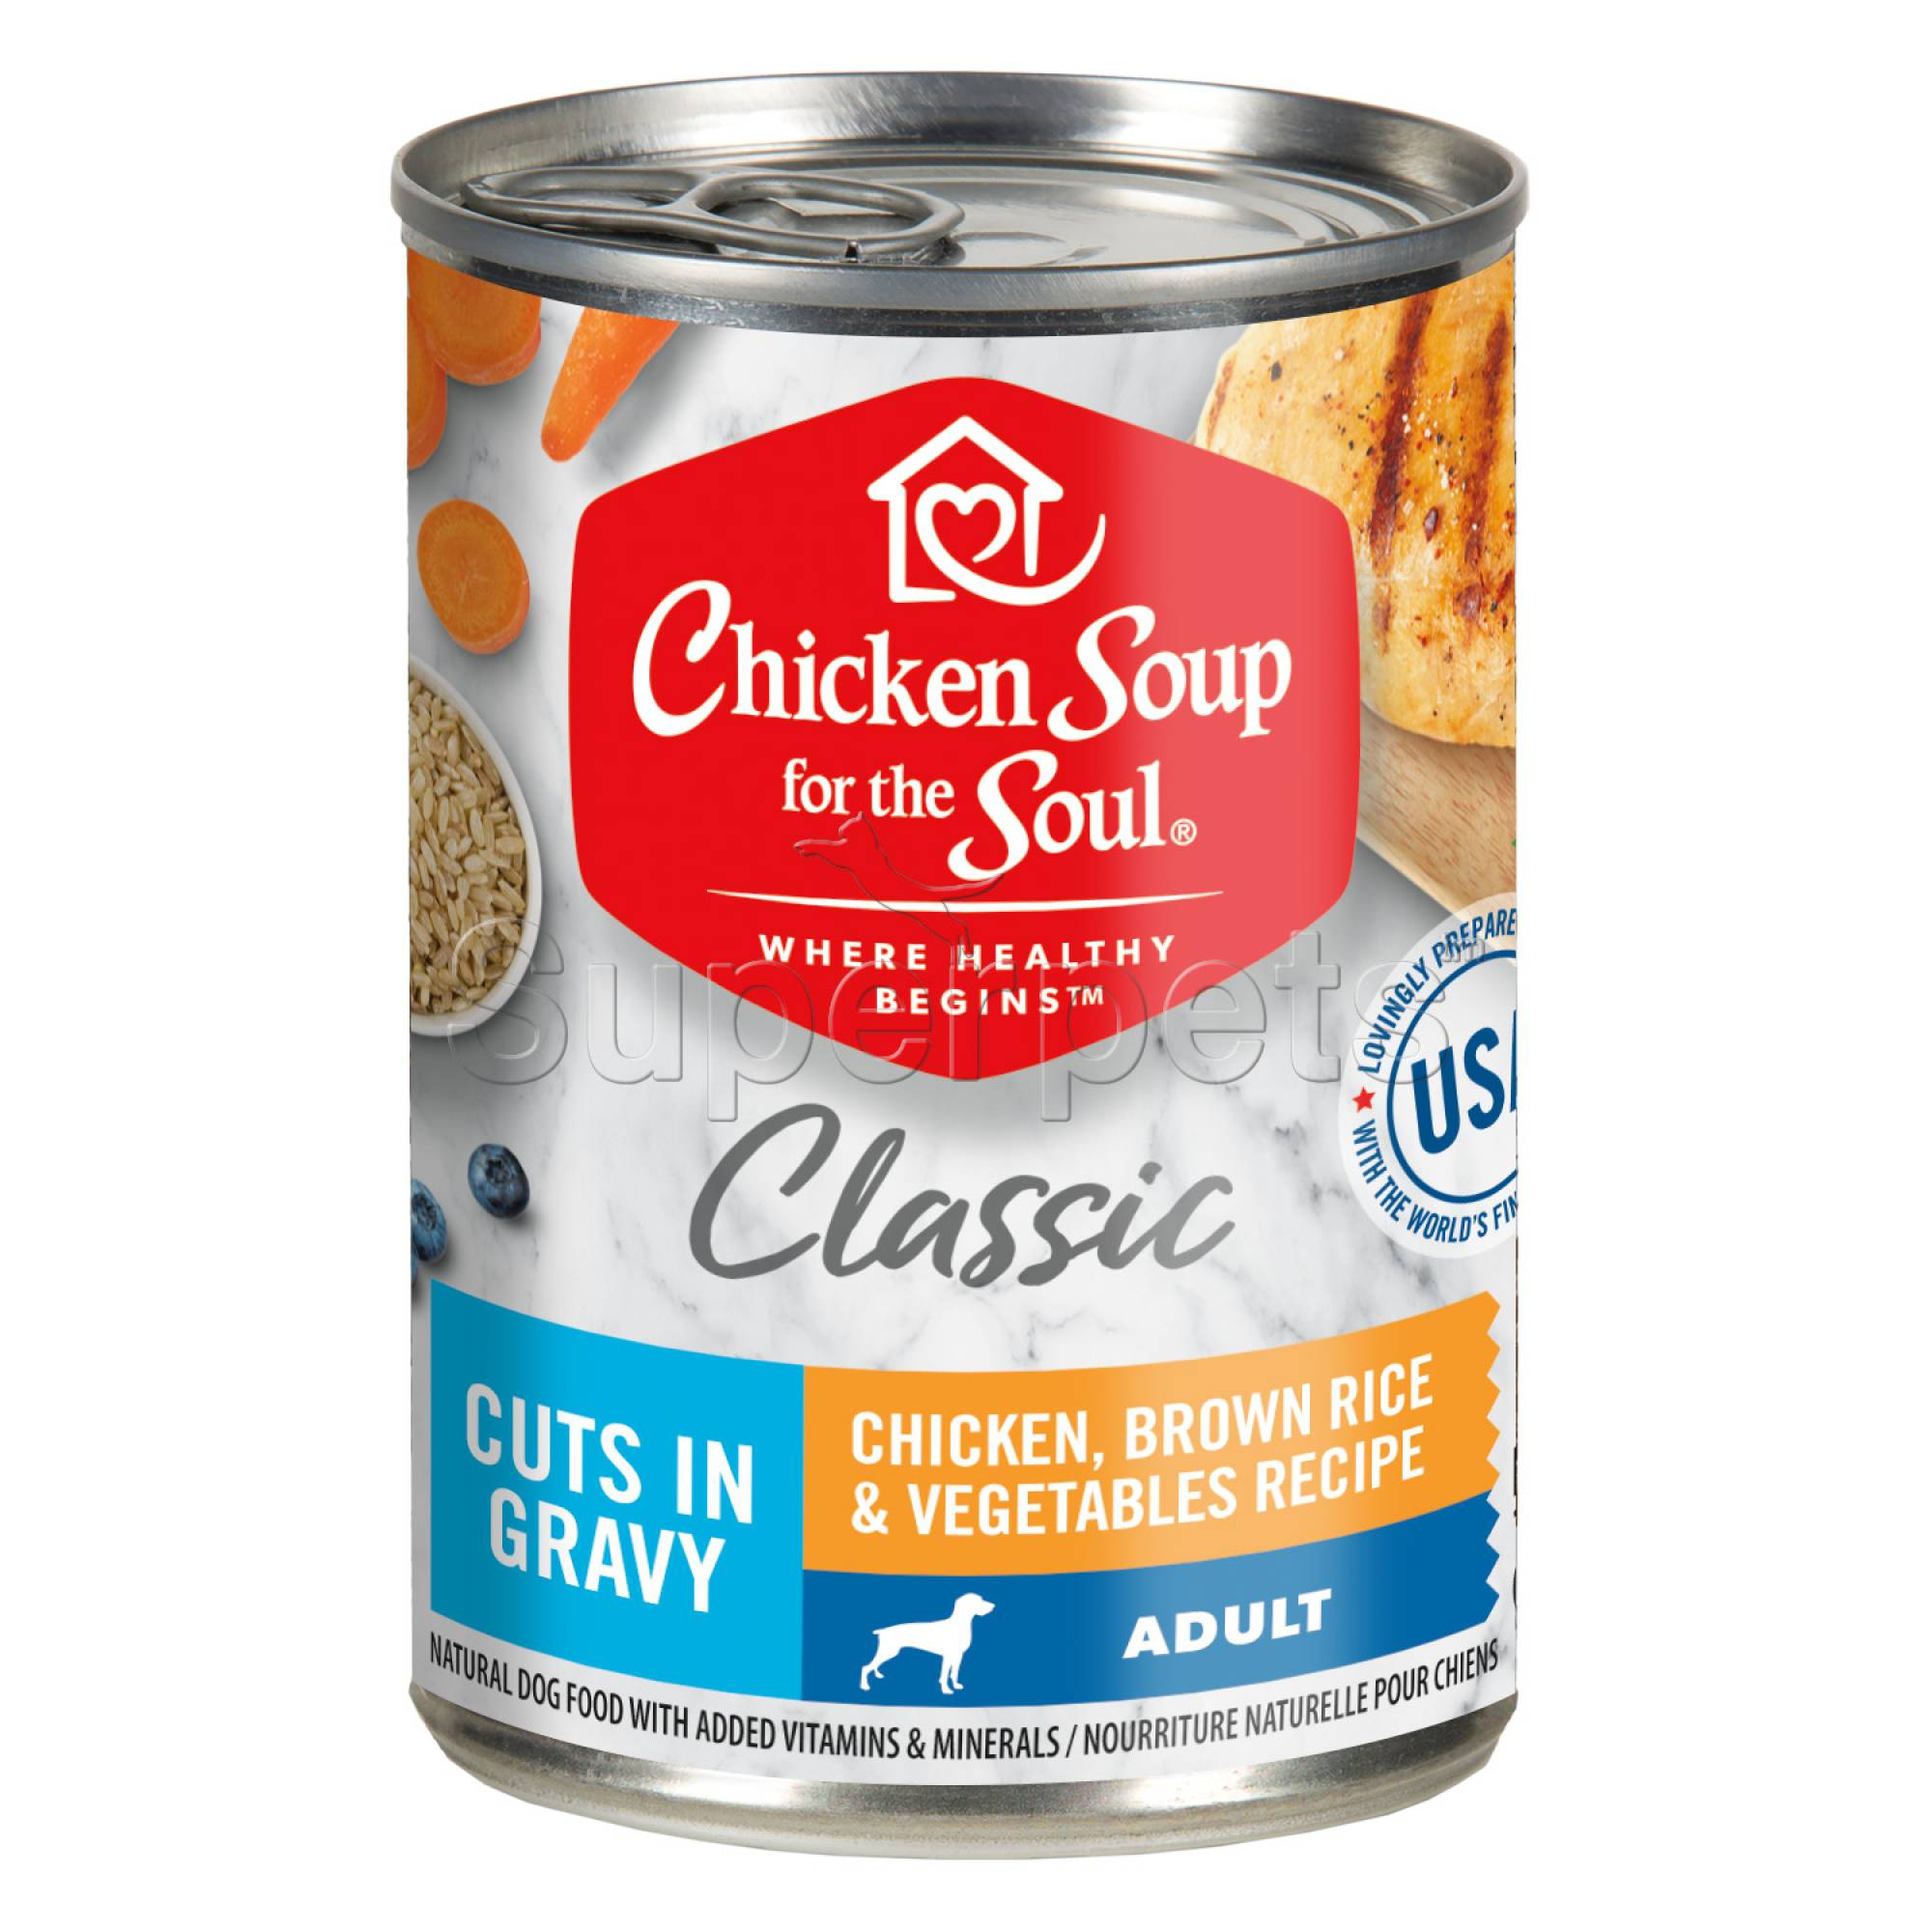 Chicken Soup for the Soul Dog Classic Cuts in Gravy 13oz Adult Chicken, Brown Rice & Vegetables Recipe